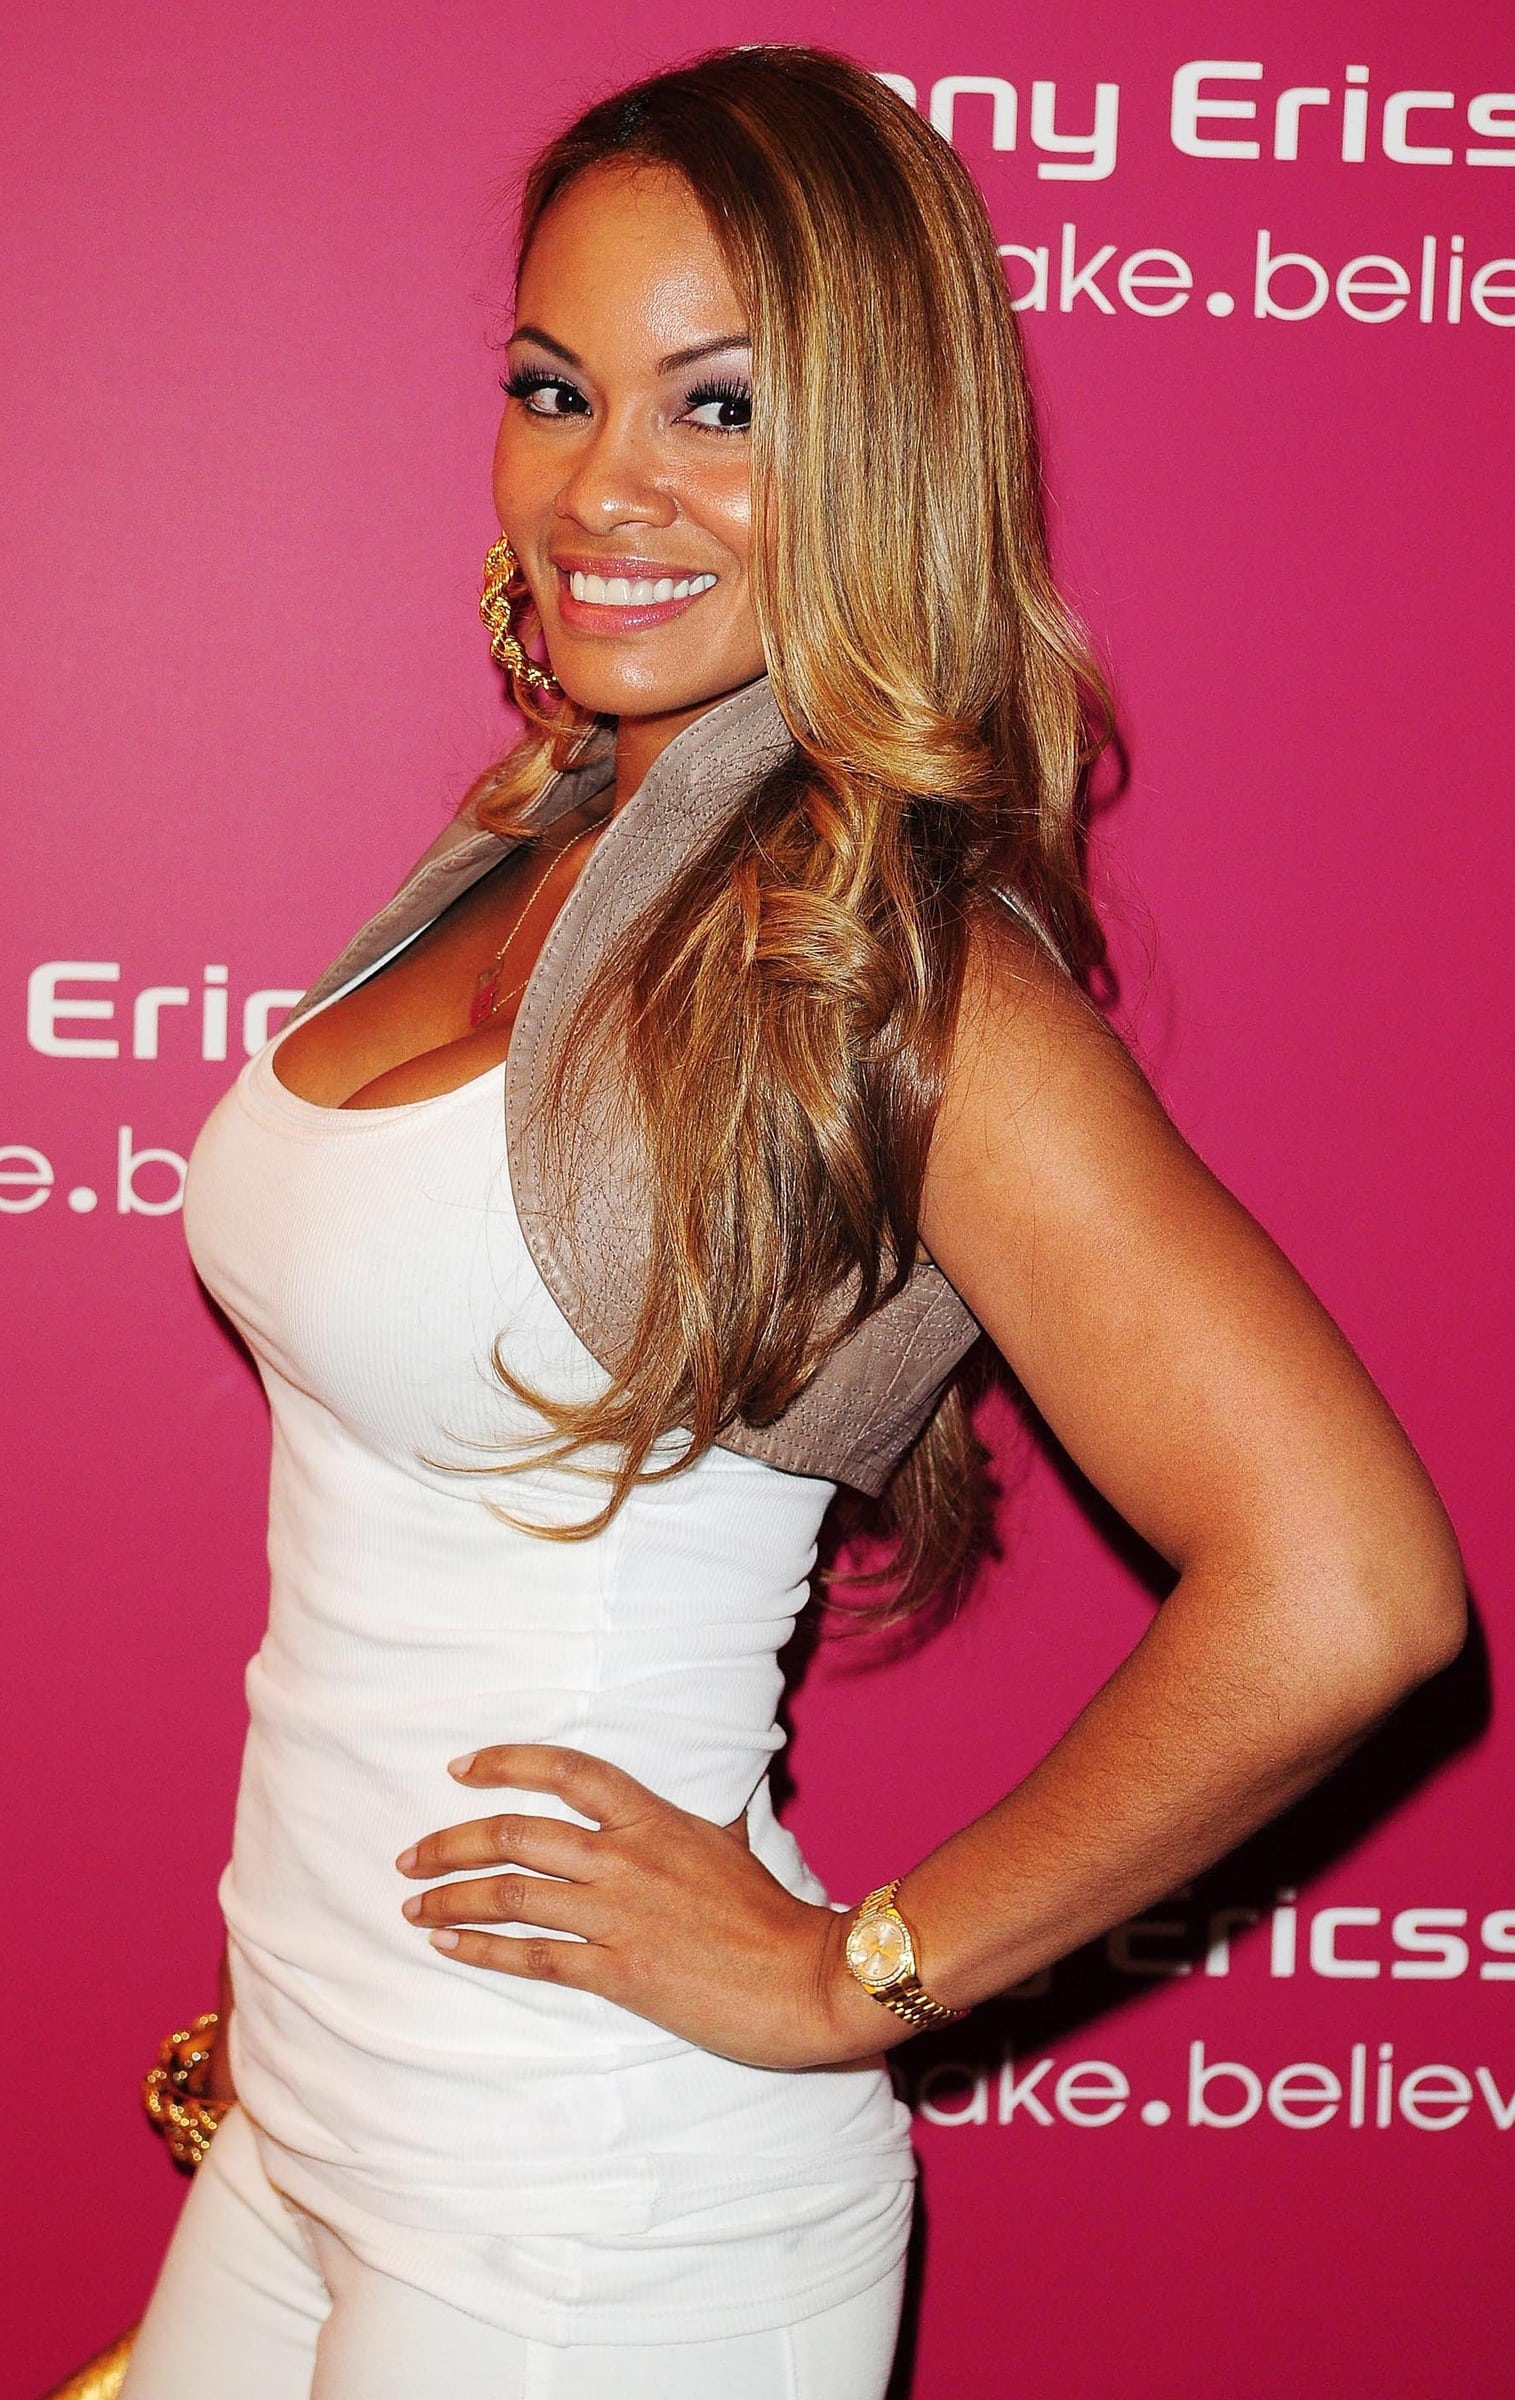 Cleavage Evelyn Lozada nudes (66 photos), Ass